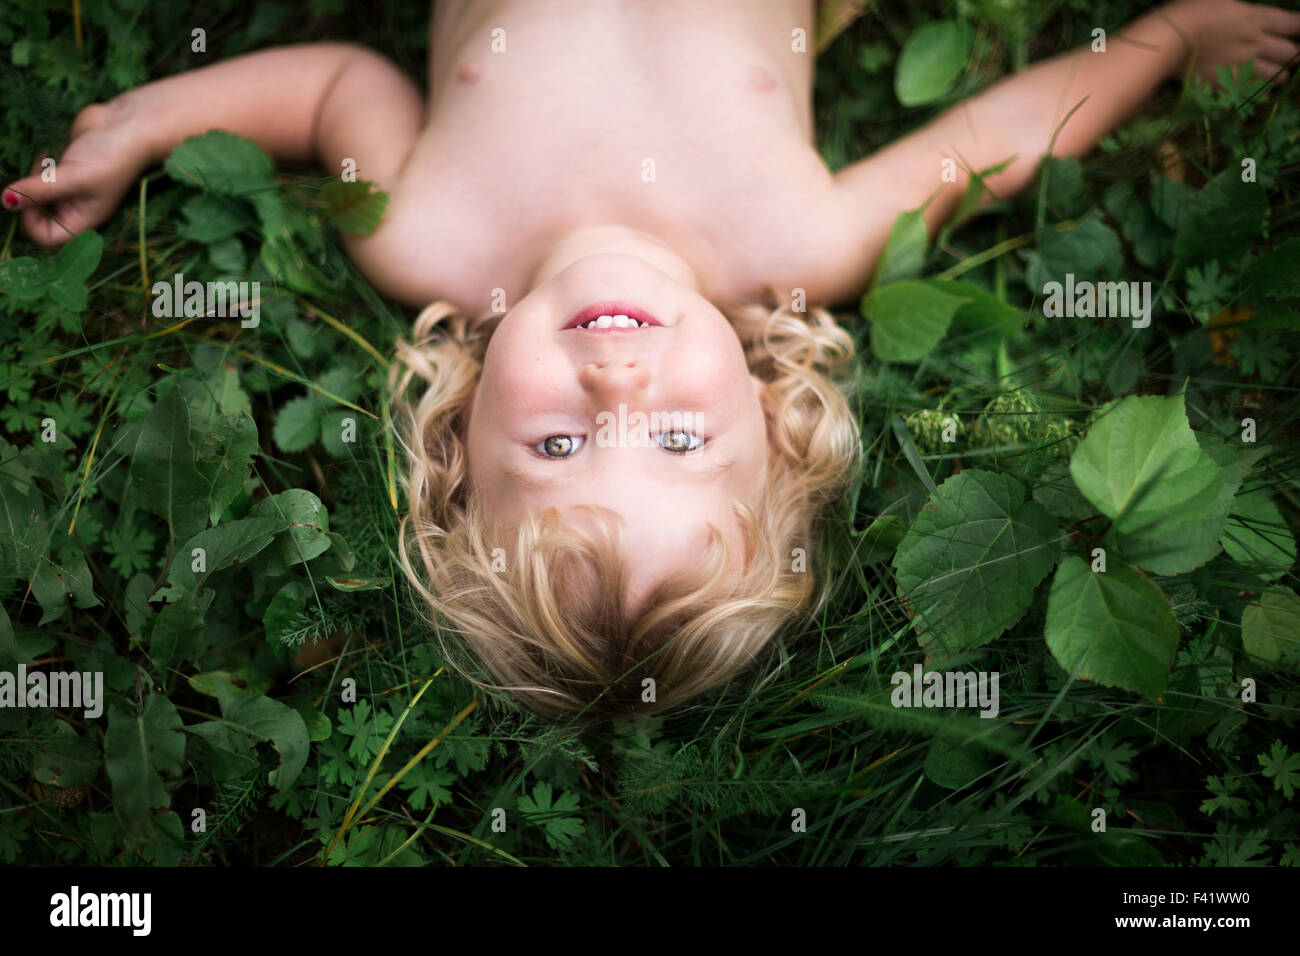 girl gazing skywards from the grass - Stock Image